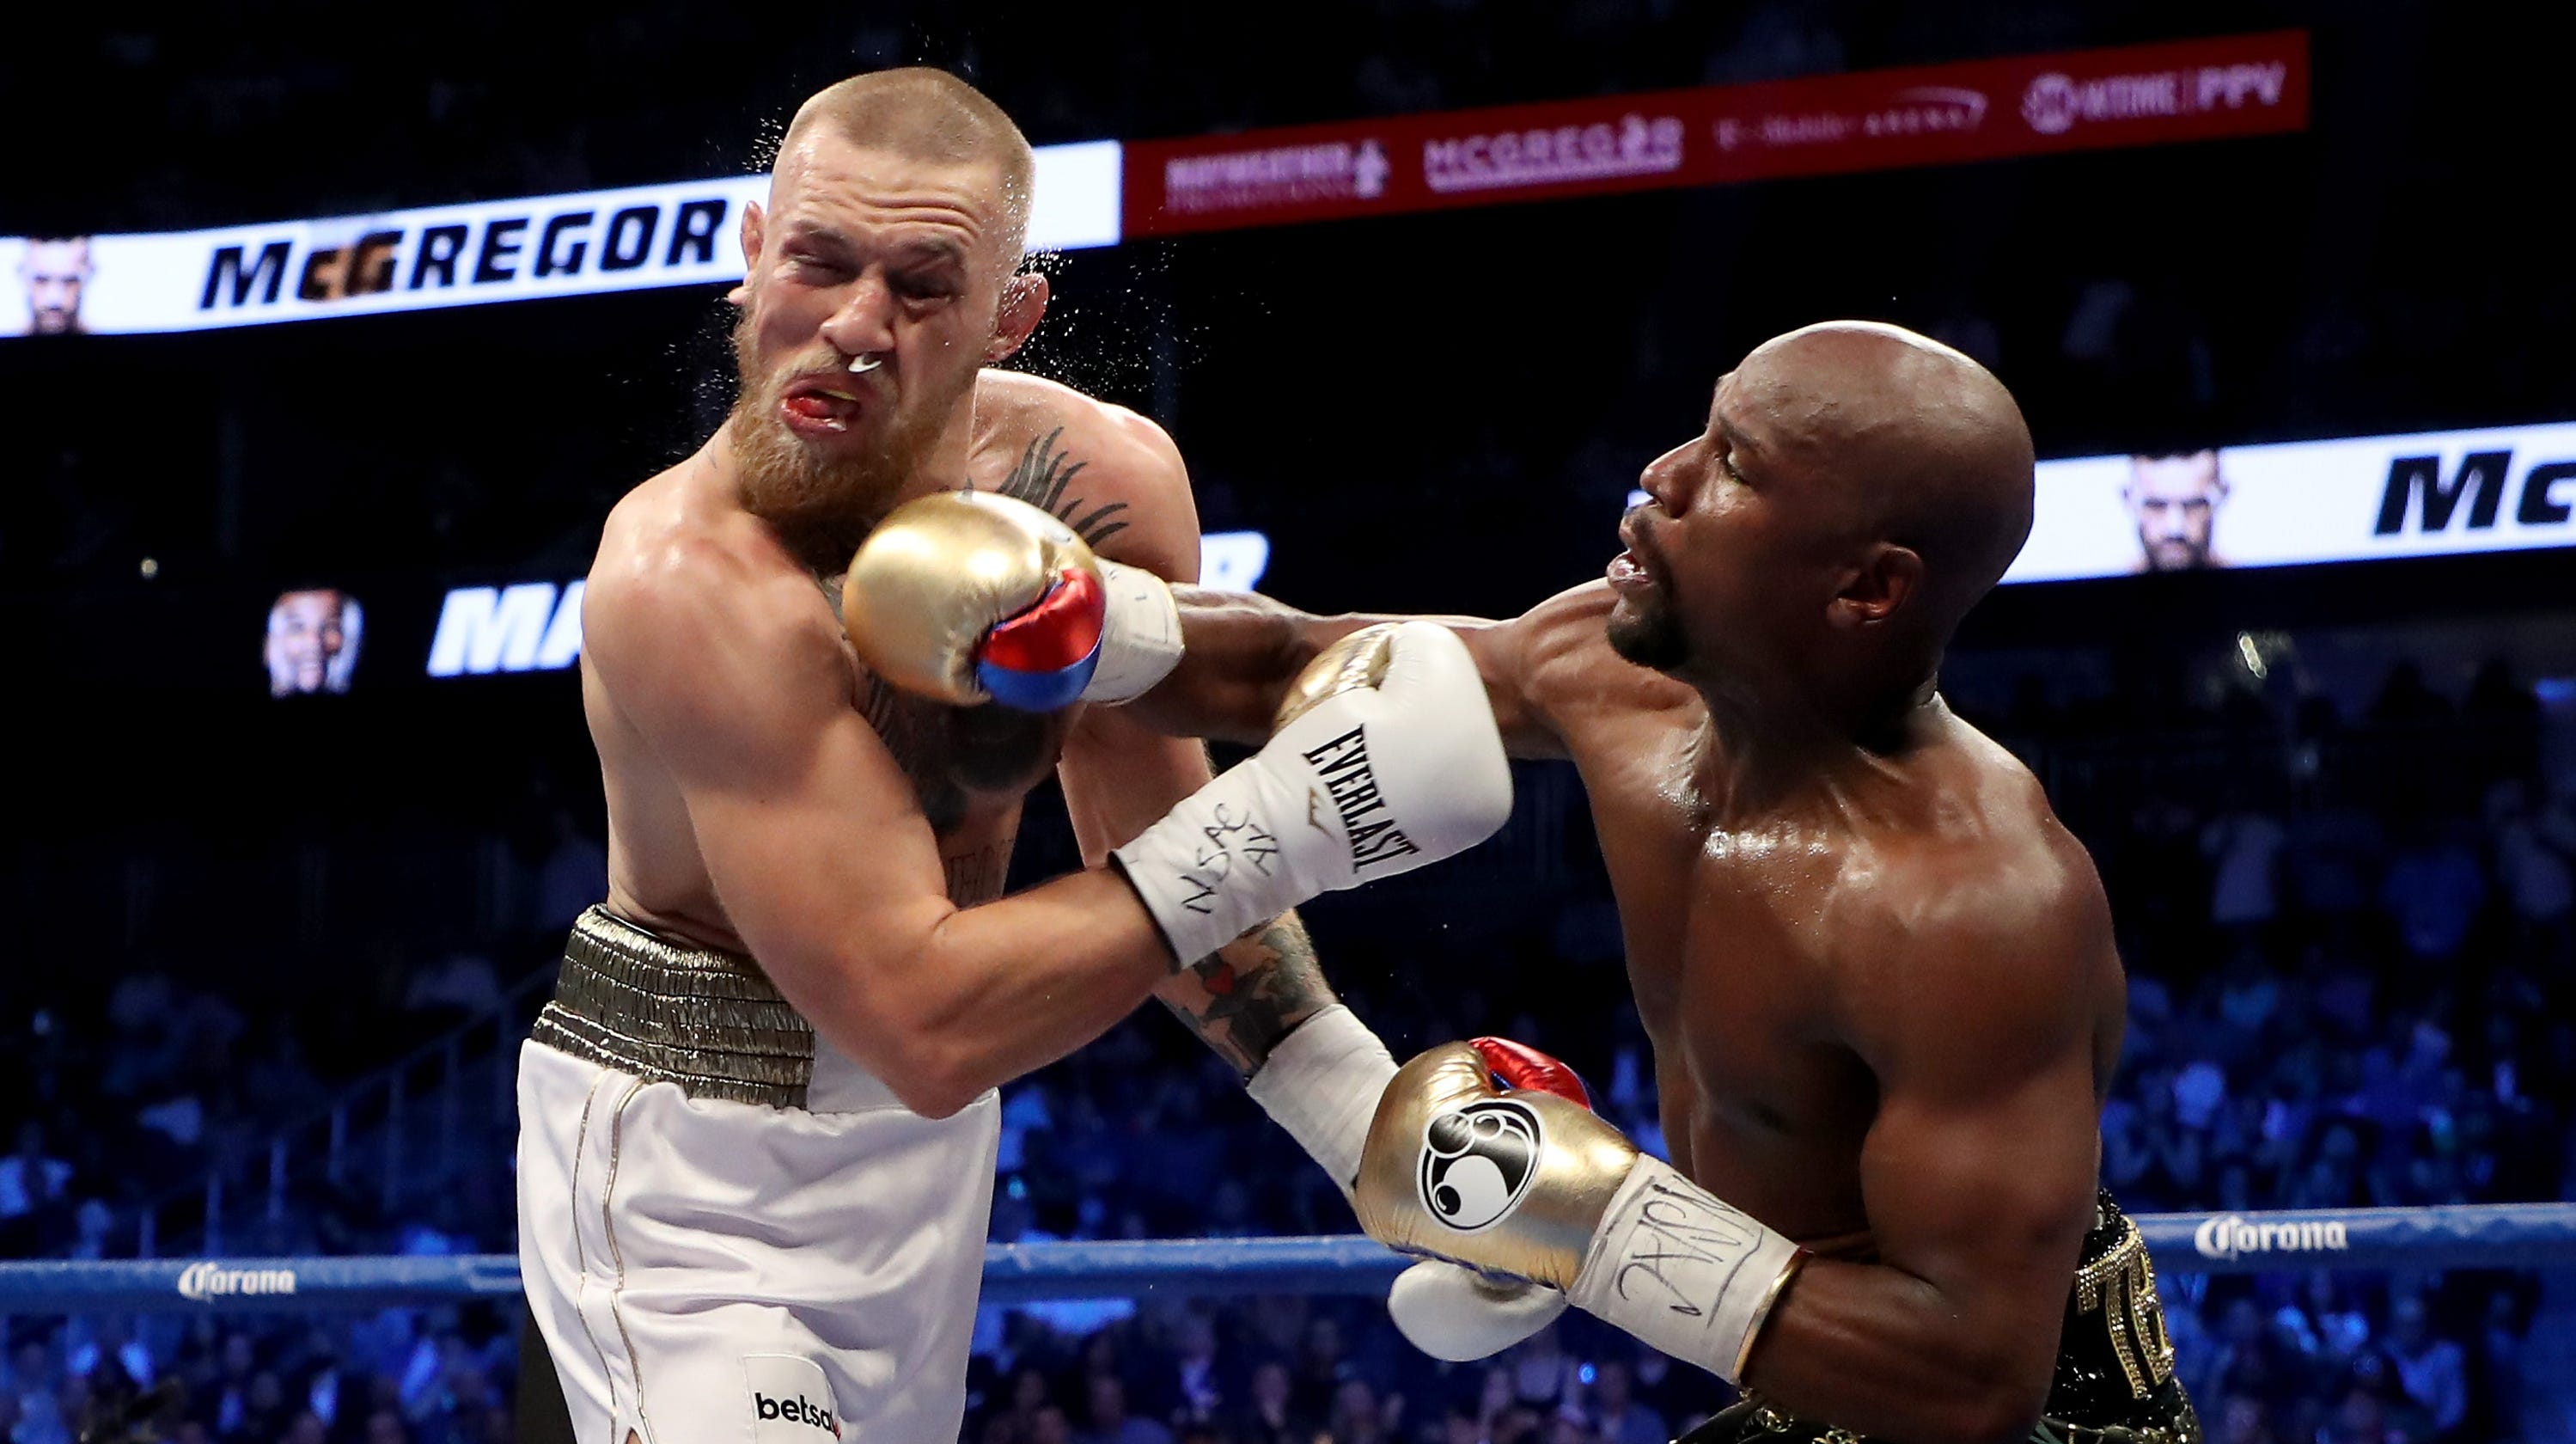 hbo to drop live boxing after 45 year of telecasts